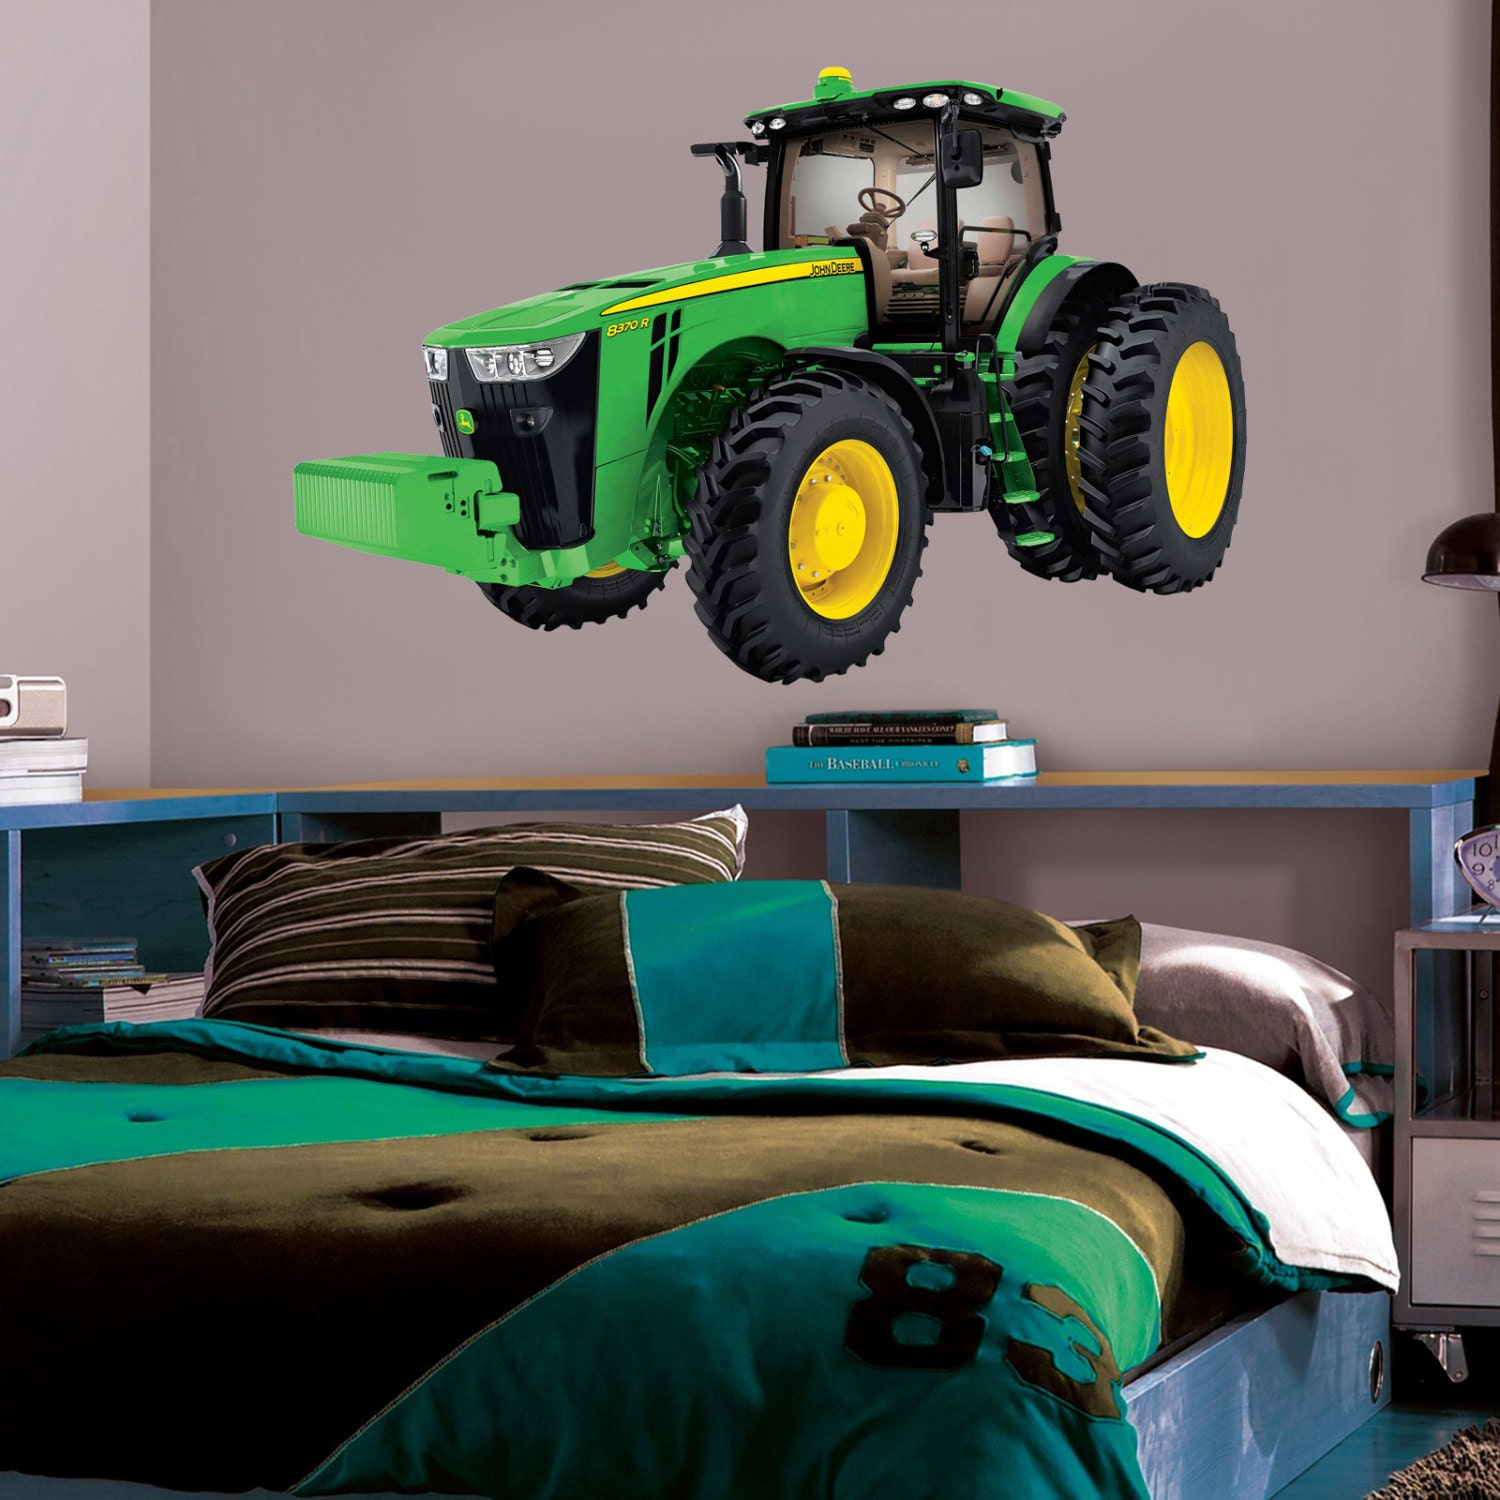 John Deere Wall Decor : John deere tractor decal wall sticker home decor by